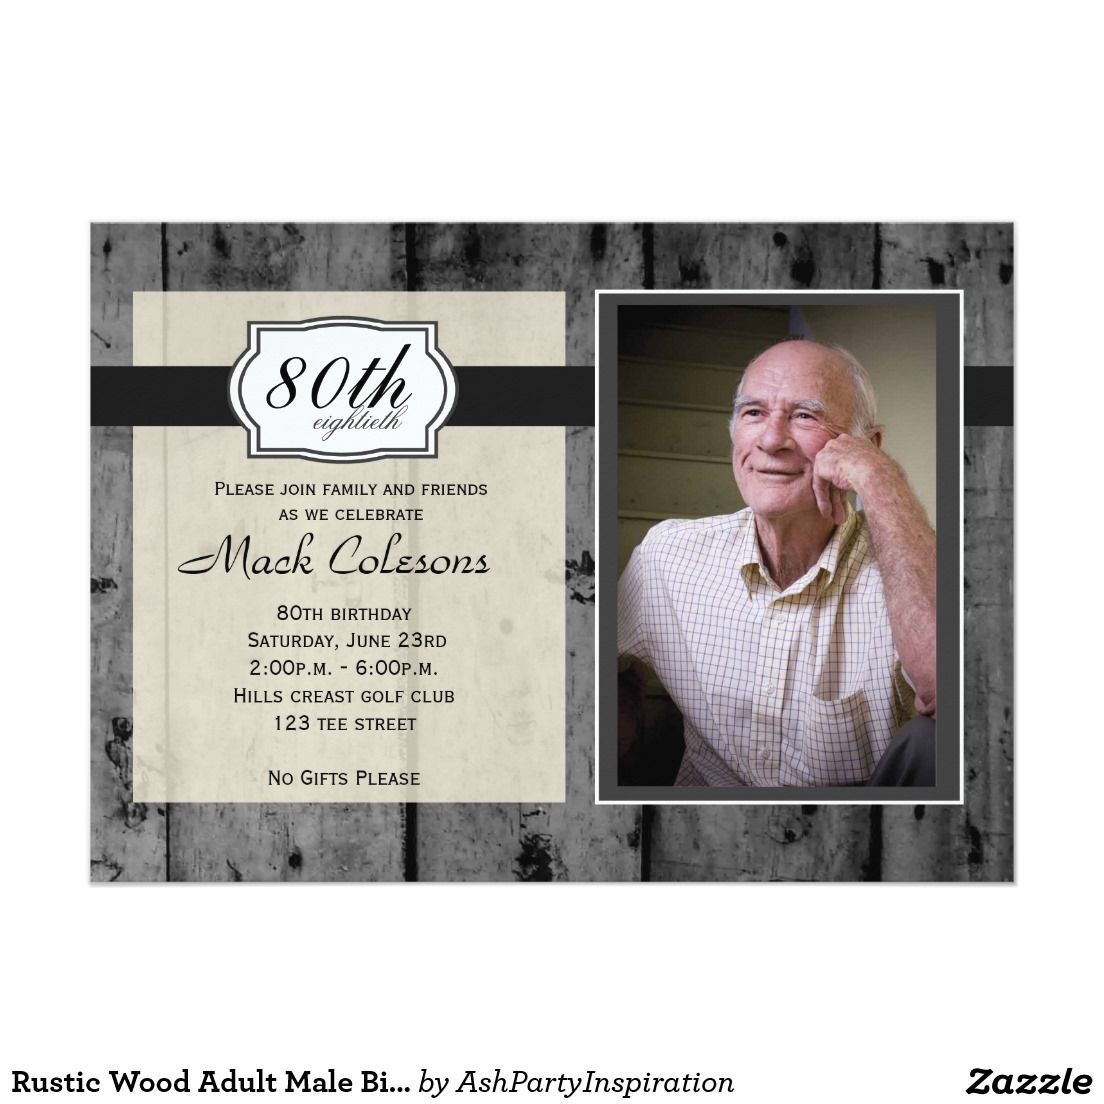 Rustic wood adult male birthday invitation male birthday rustic rustic wood adult male birthday invitation 5 x 7 invitation card filmwisefo Gallery